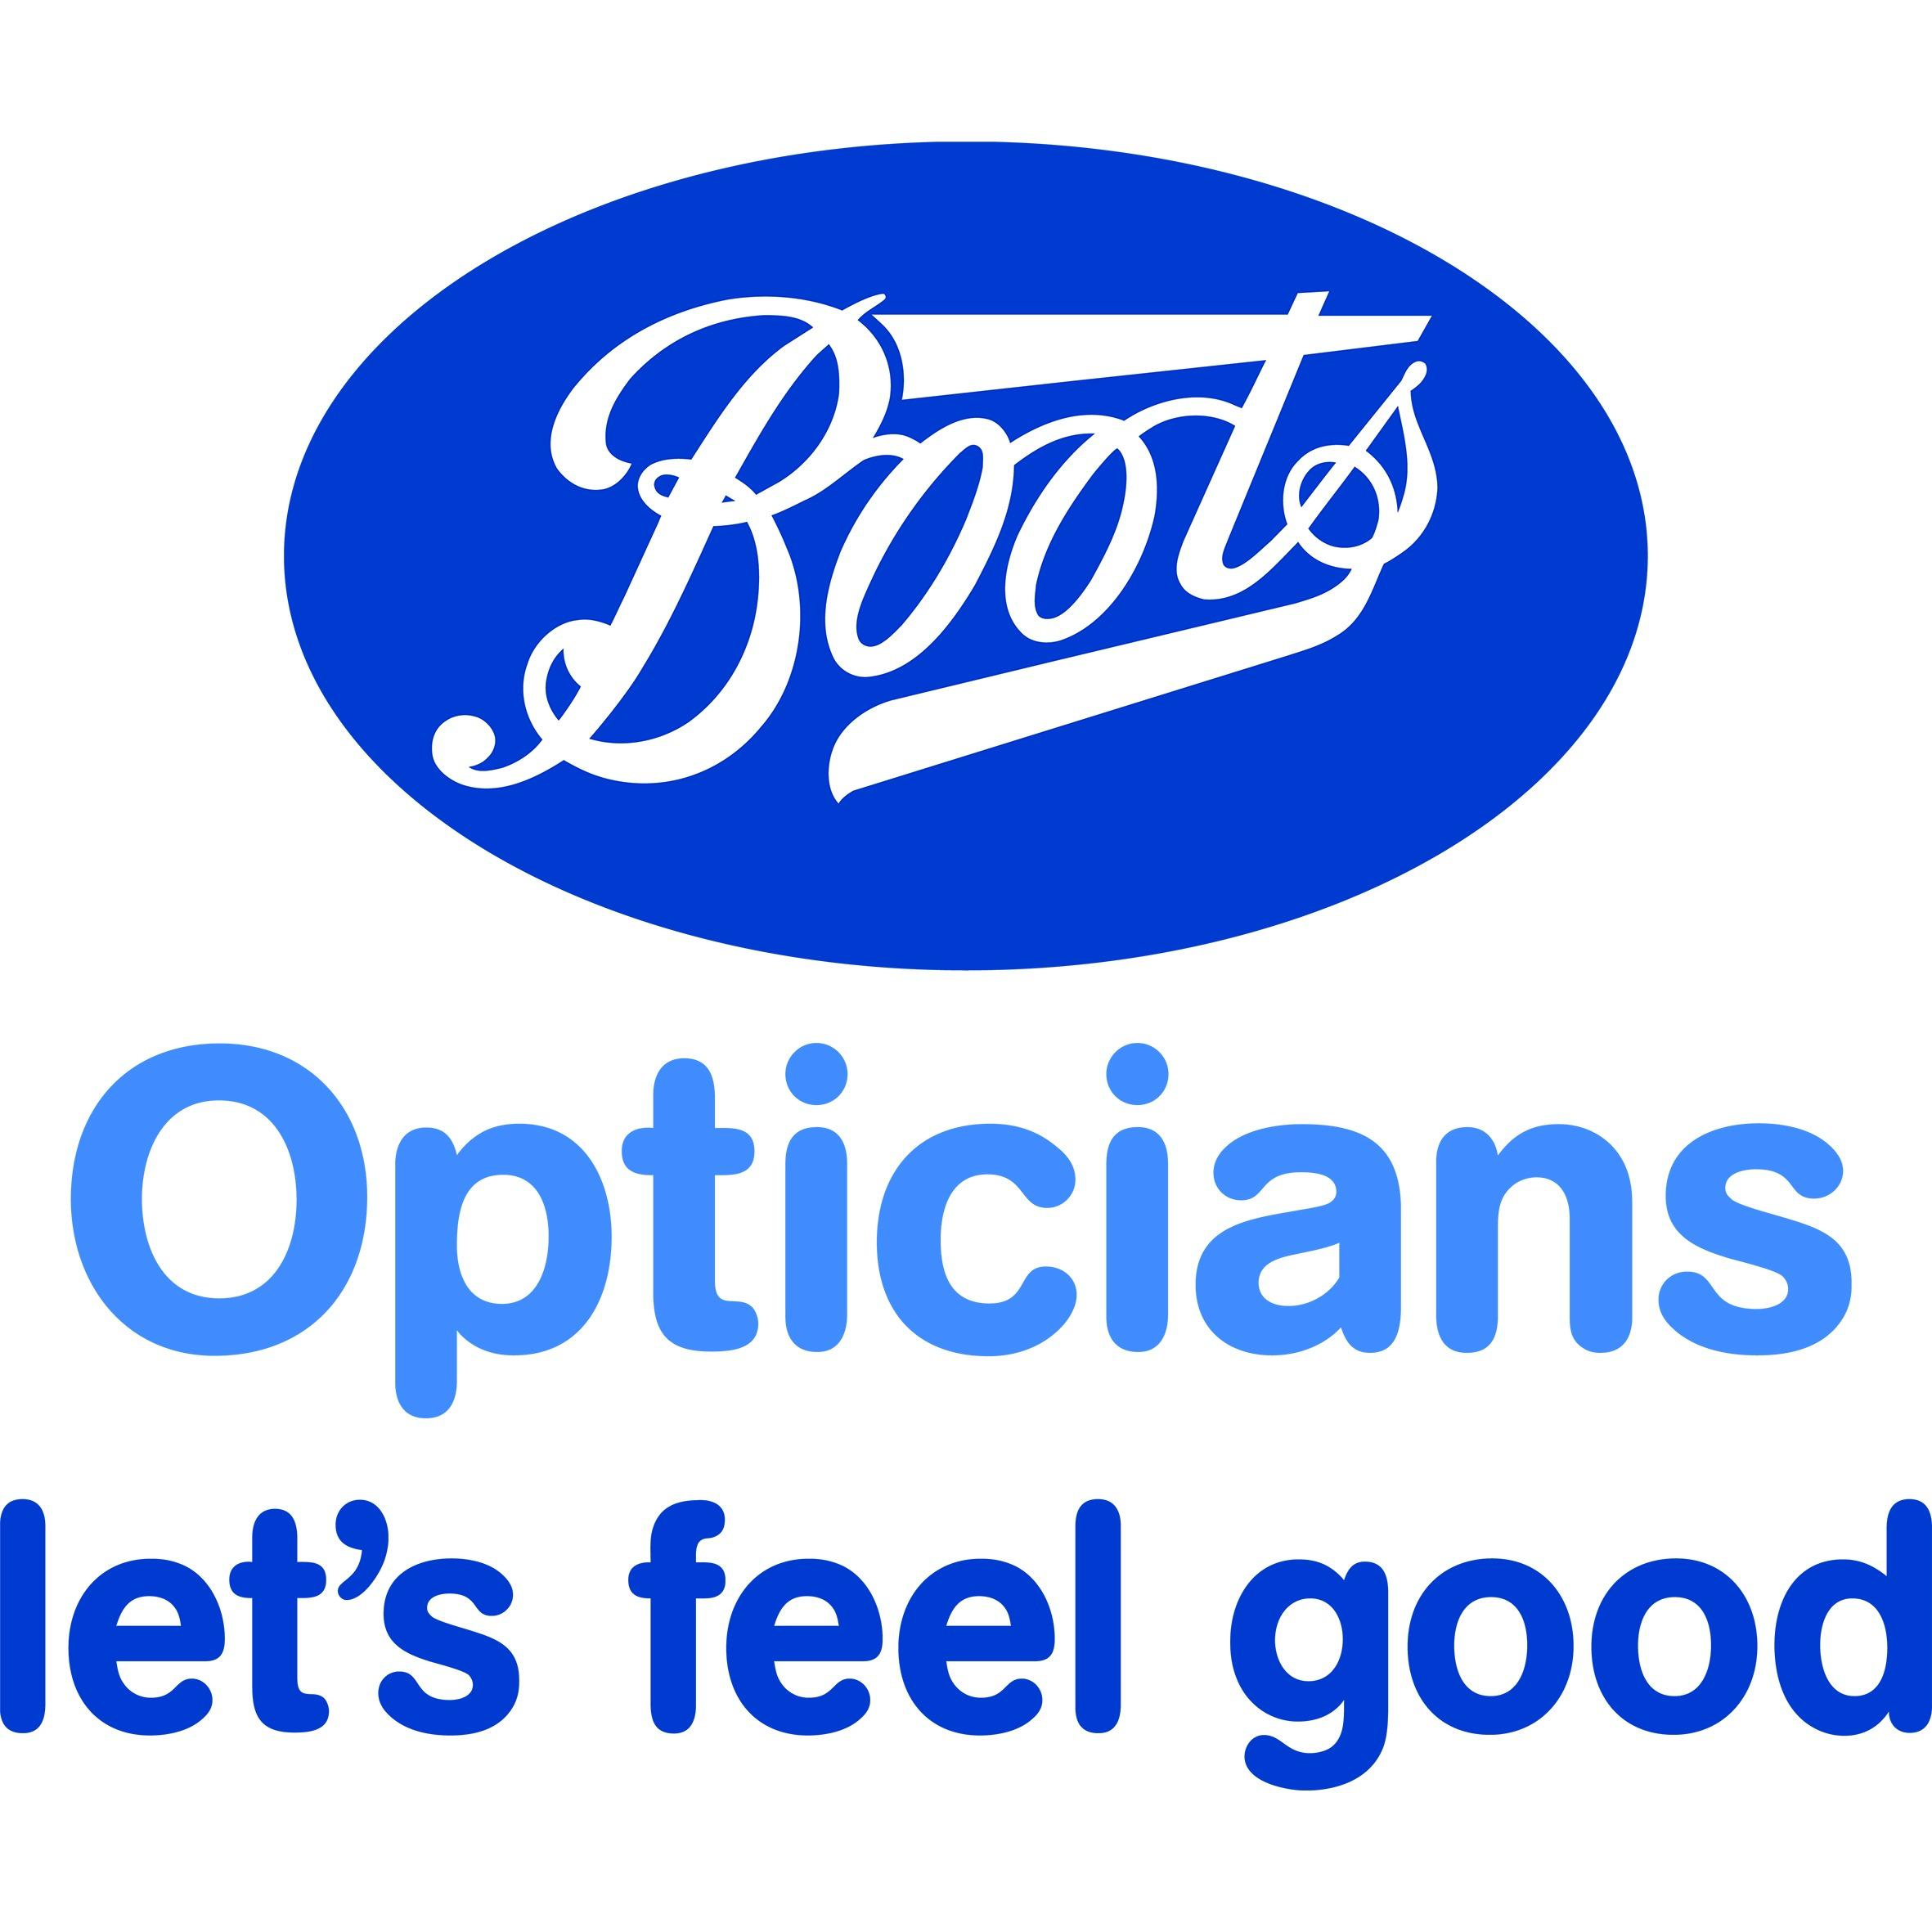 Boots Opticians - London, London NW3 6TE - 020 7794 6101 | ShowMeLocal.com